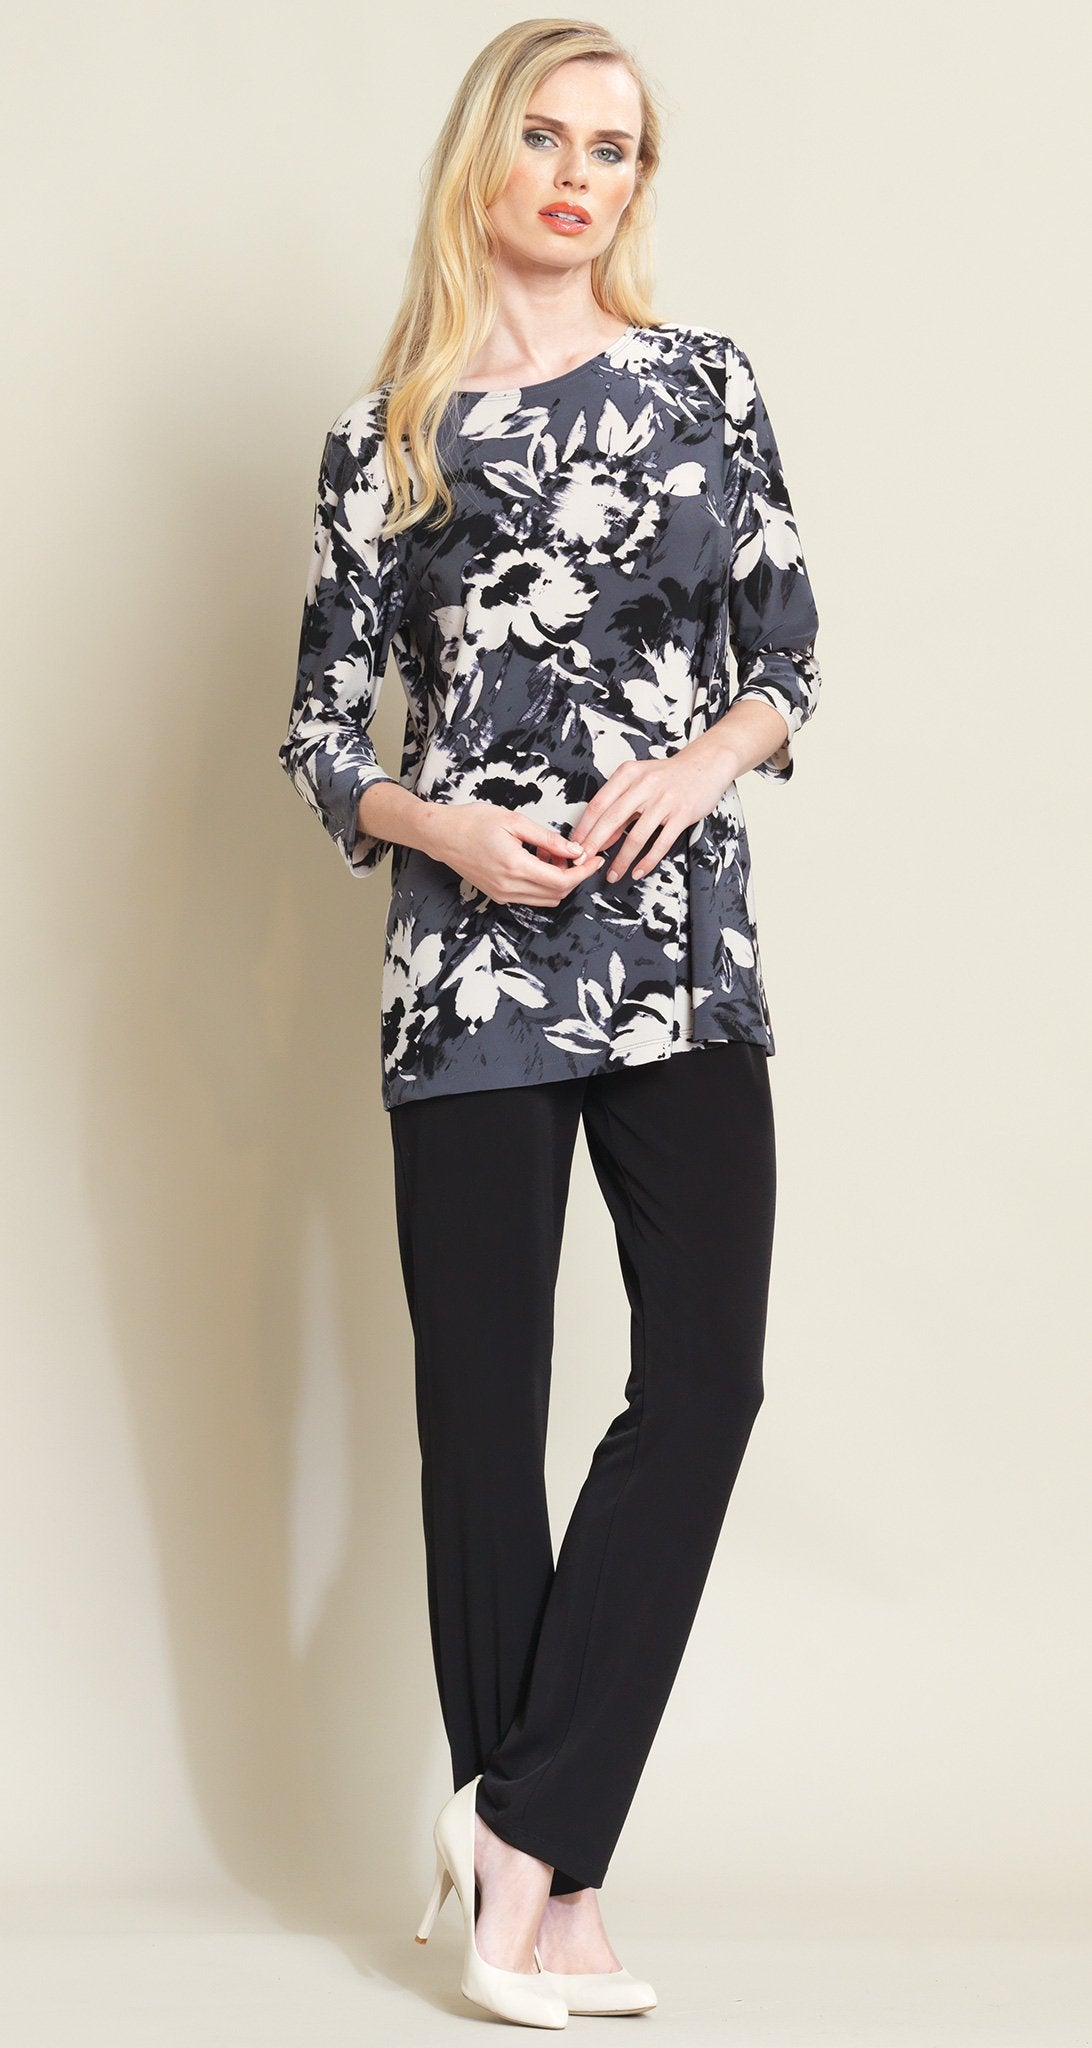 Peony Print Scoop Neck Tunic - Ivory/Charcoal - Limited Sizes! - Clara Sunwoo